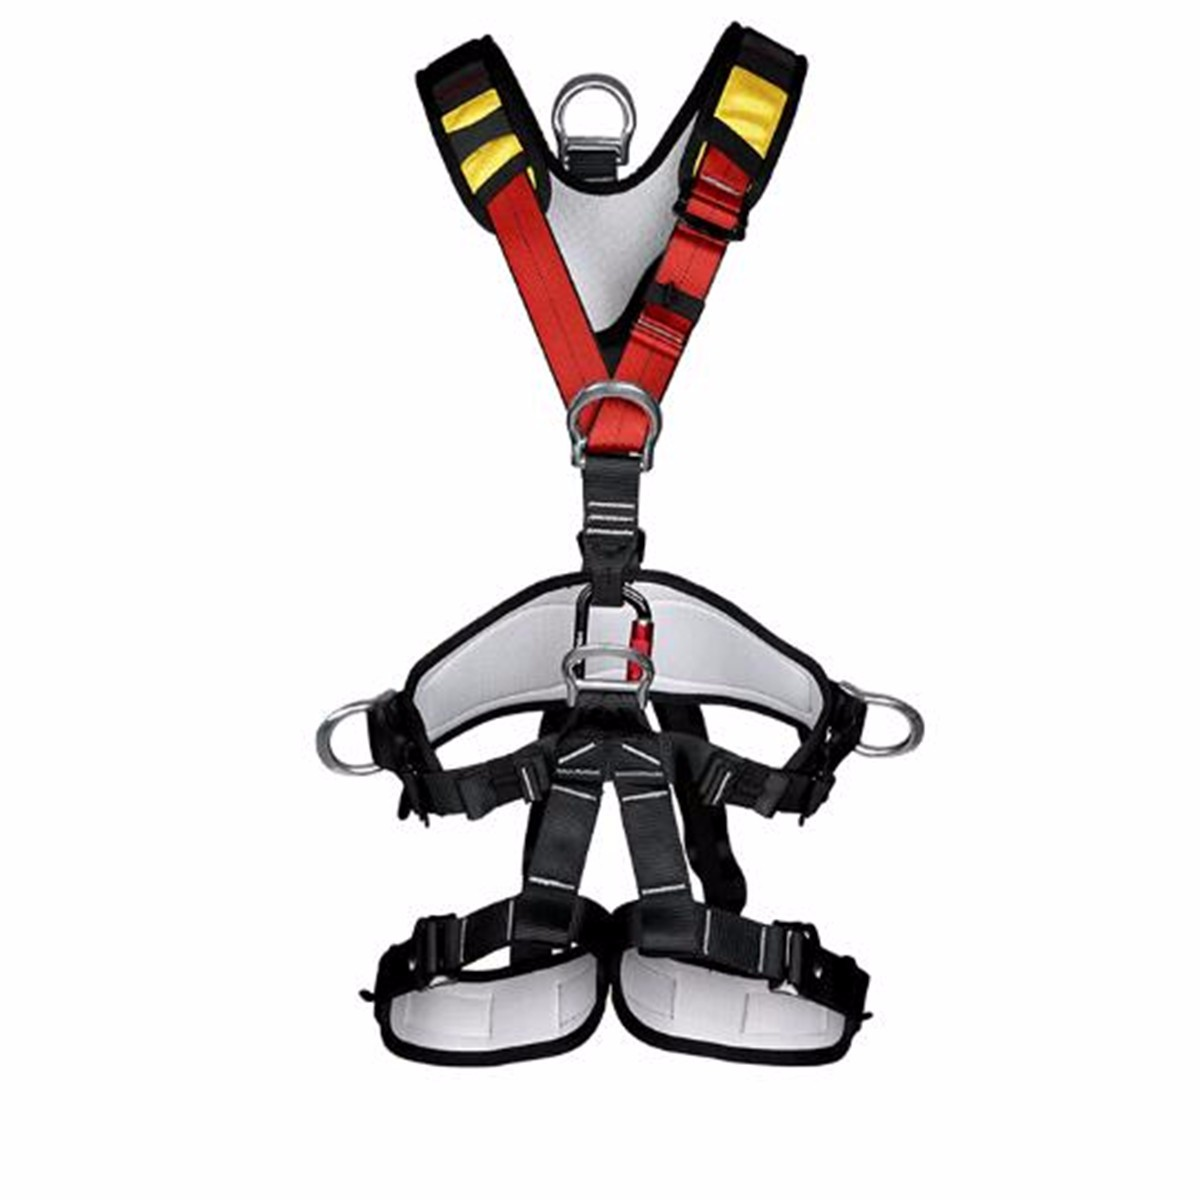 Outdoor Rock Climbing Rappelling Mountaineering Full Body Safety Harness Wearing Seat Belt Sitting Bust Protection Gear hot sale safety body harness outdoor mountaineering rock climbing harness protect waist seat belt outside multi tools